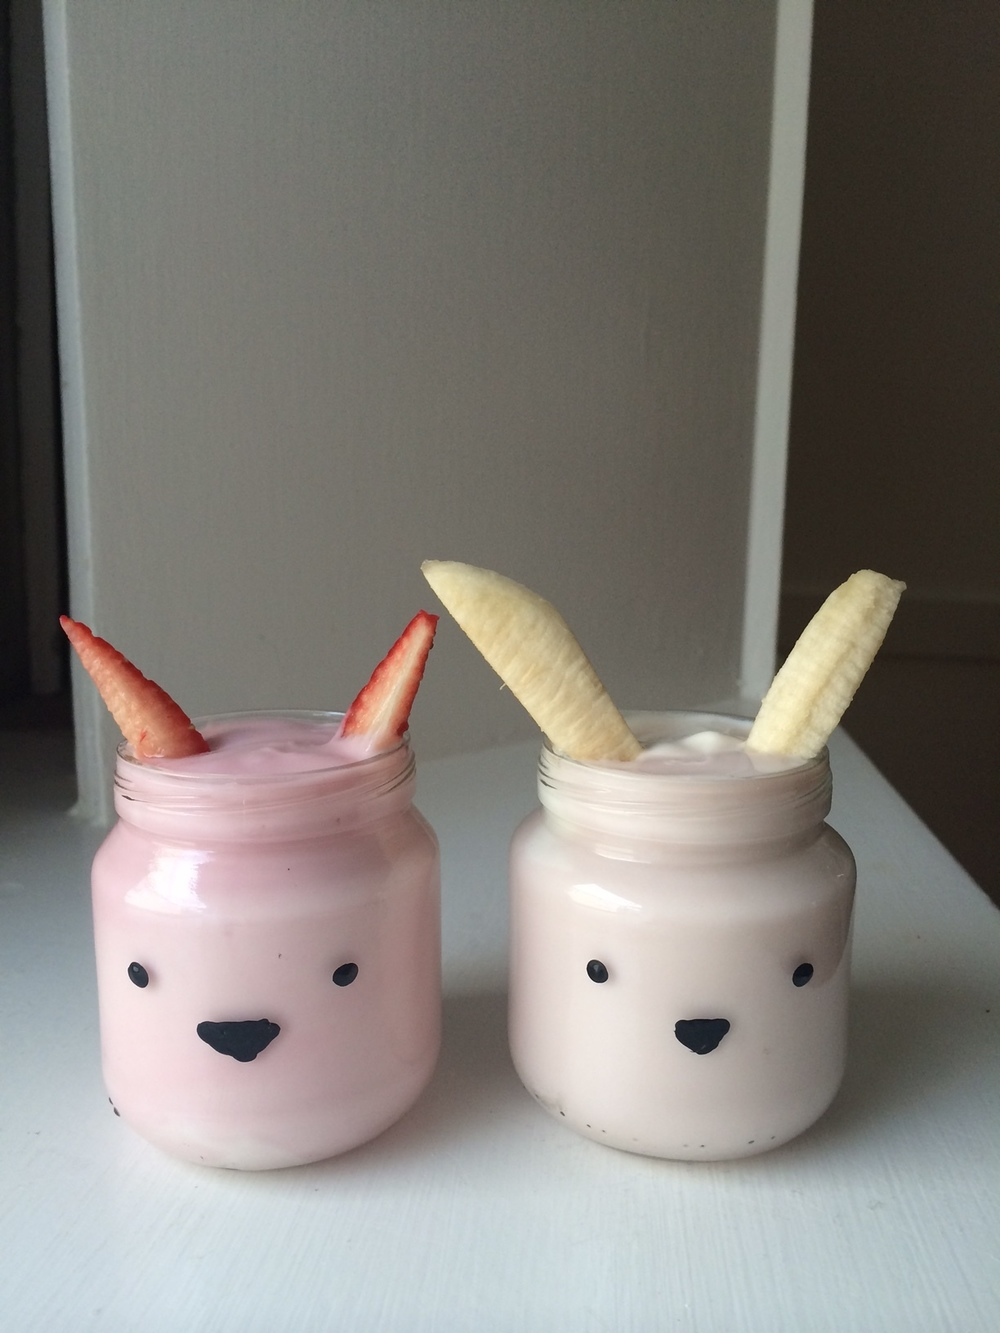 Yogurt-Bunny-1-Super-Make-Iy